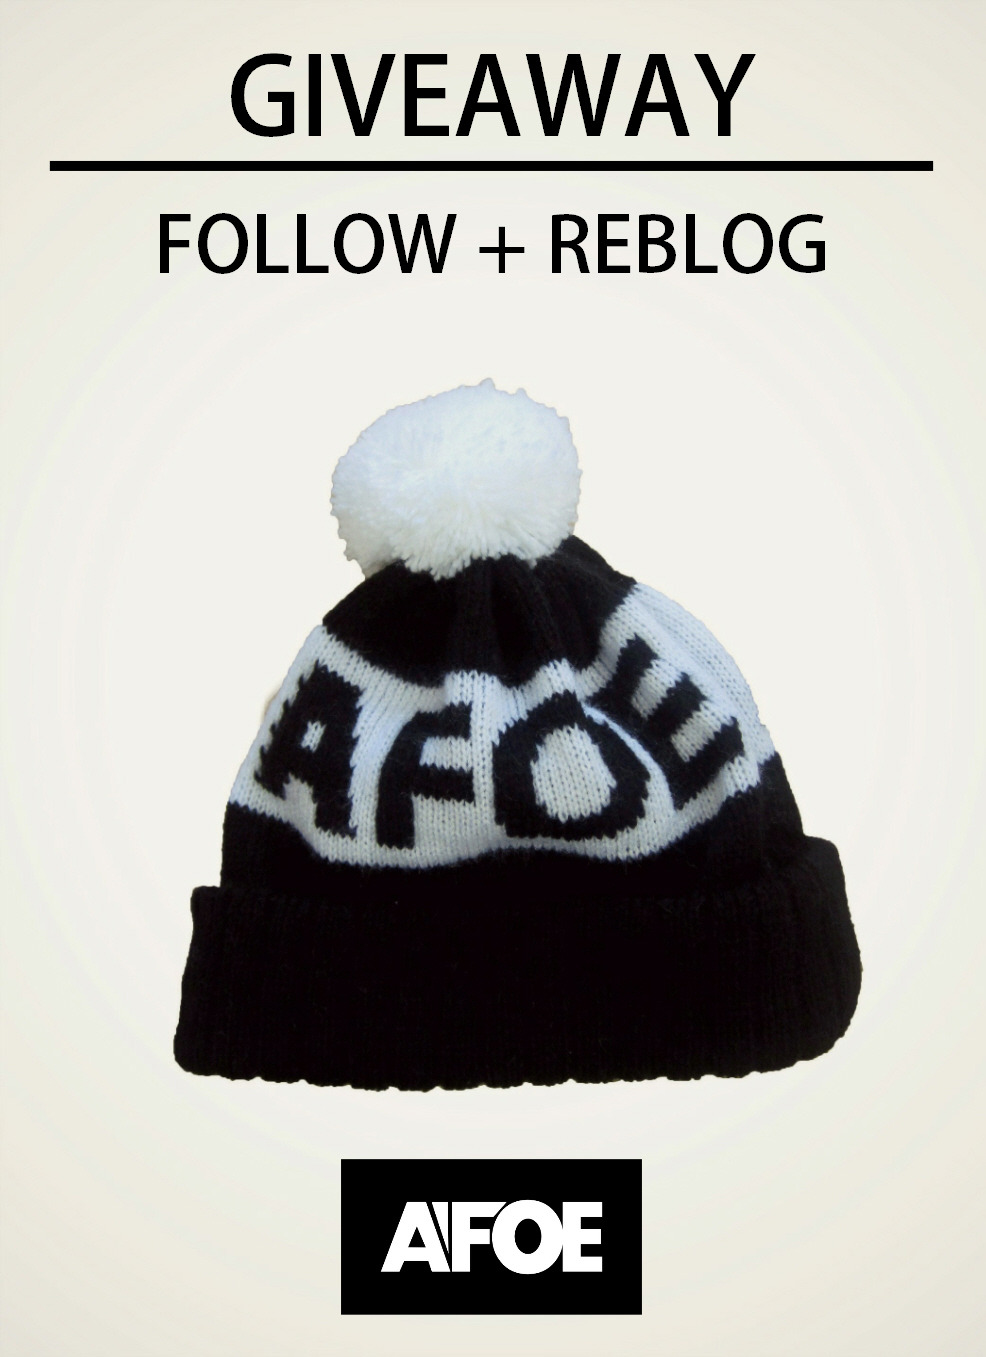 afoeclothing:  GIVEAWAY - Finishes Friday 8th Follow our blog and reblog the image for your chance to win the beanie. Good luck to everyone who enters!